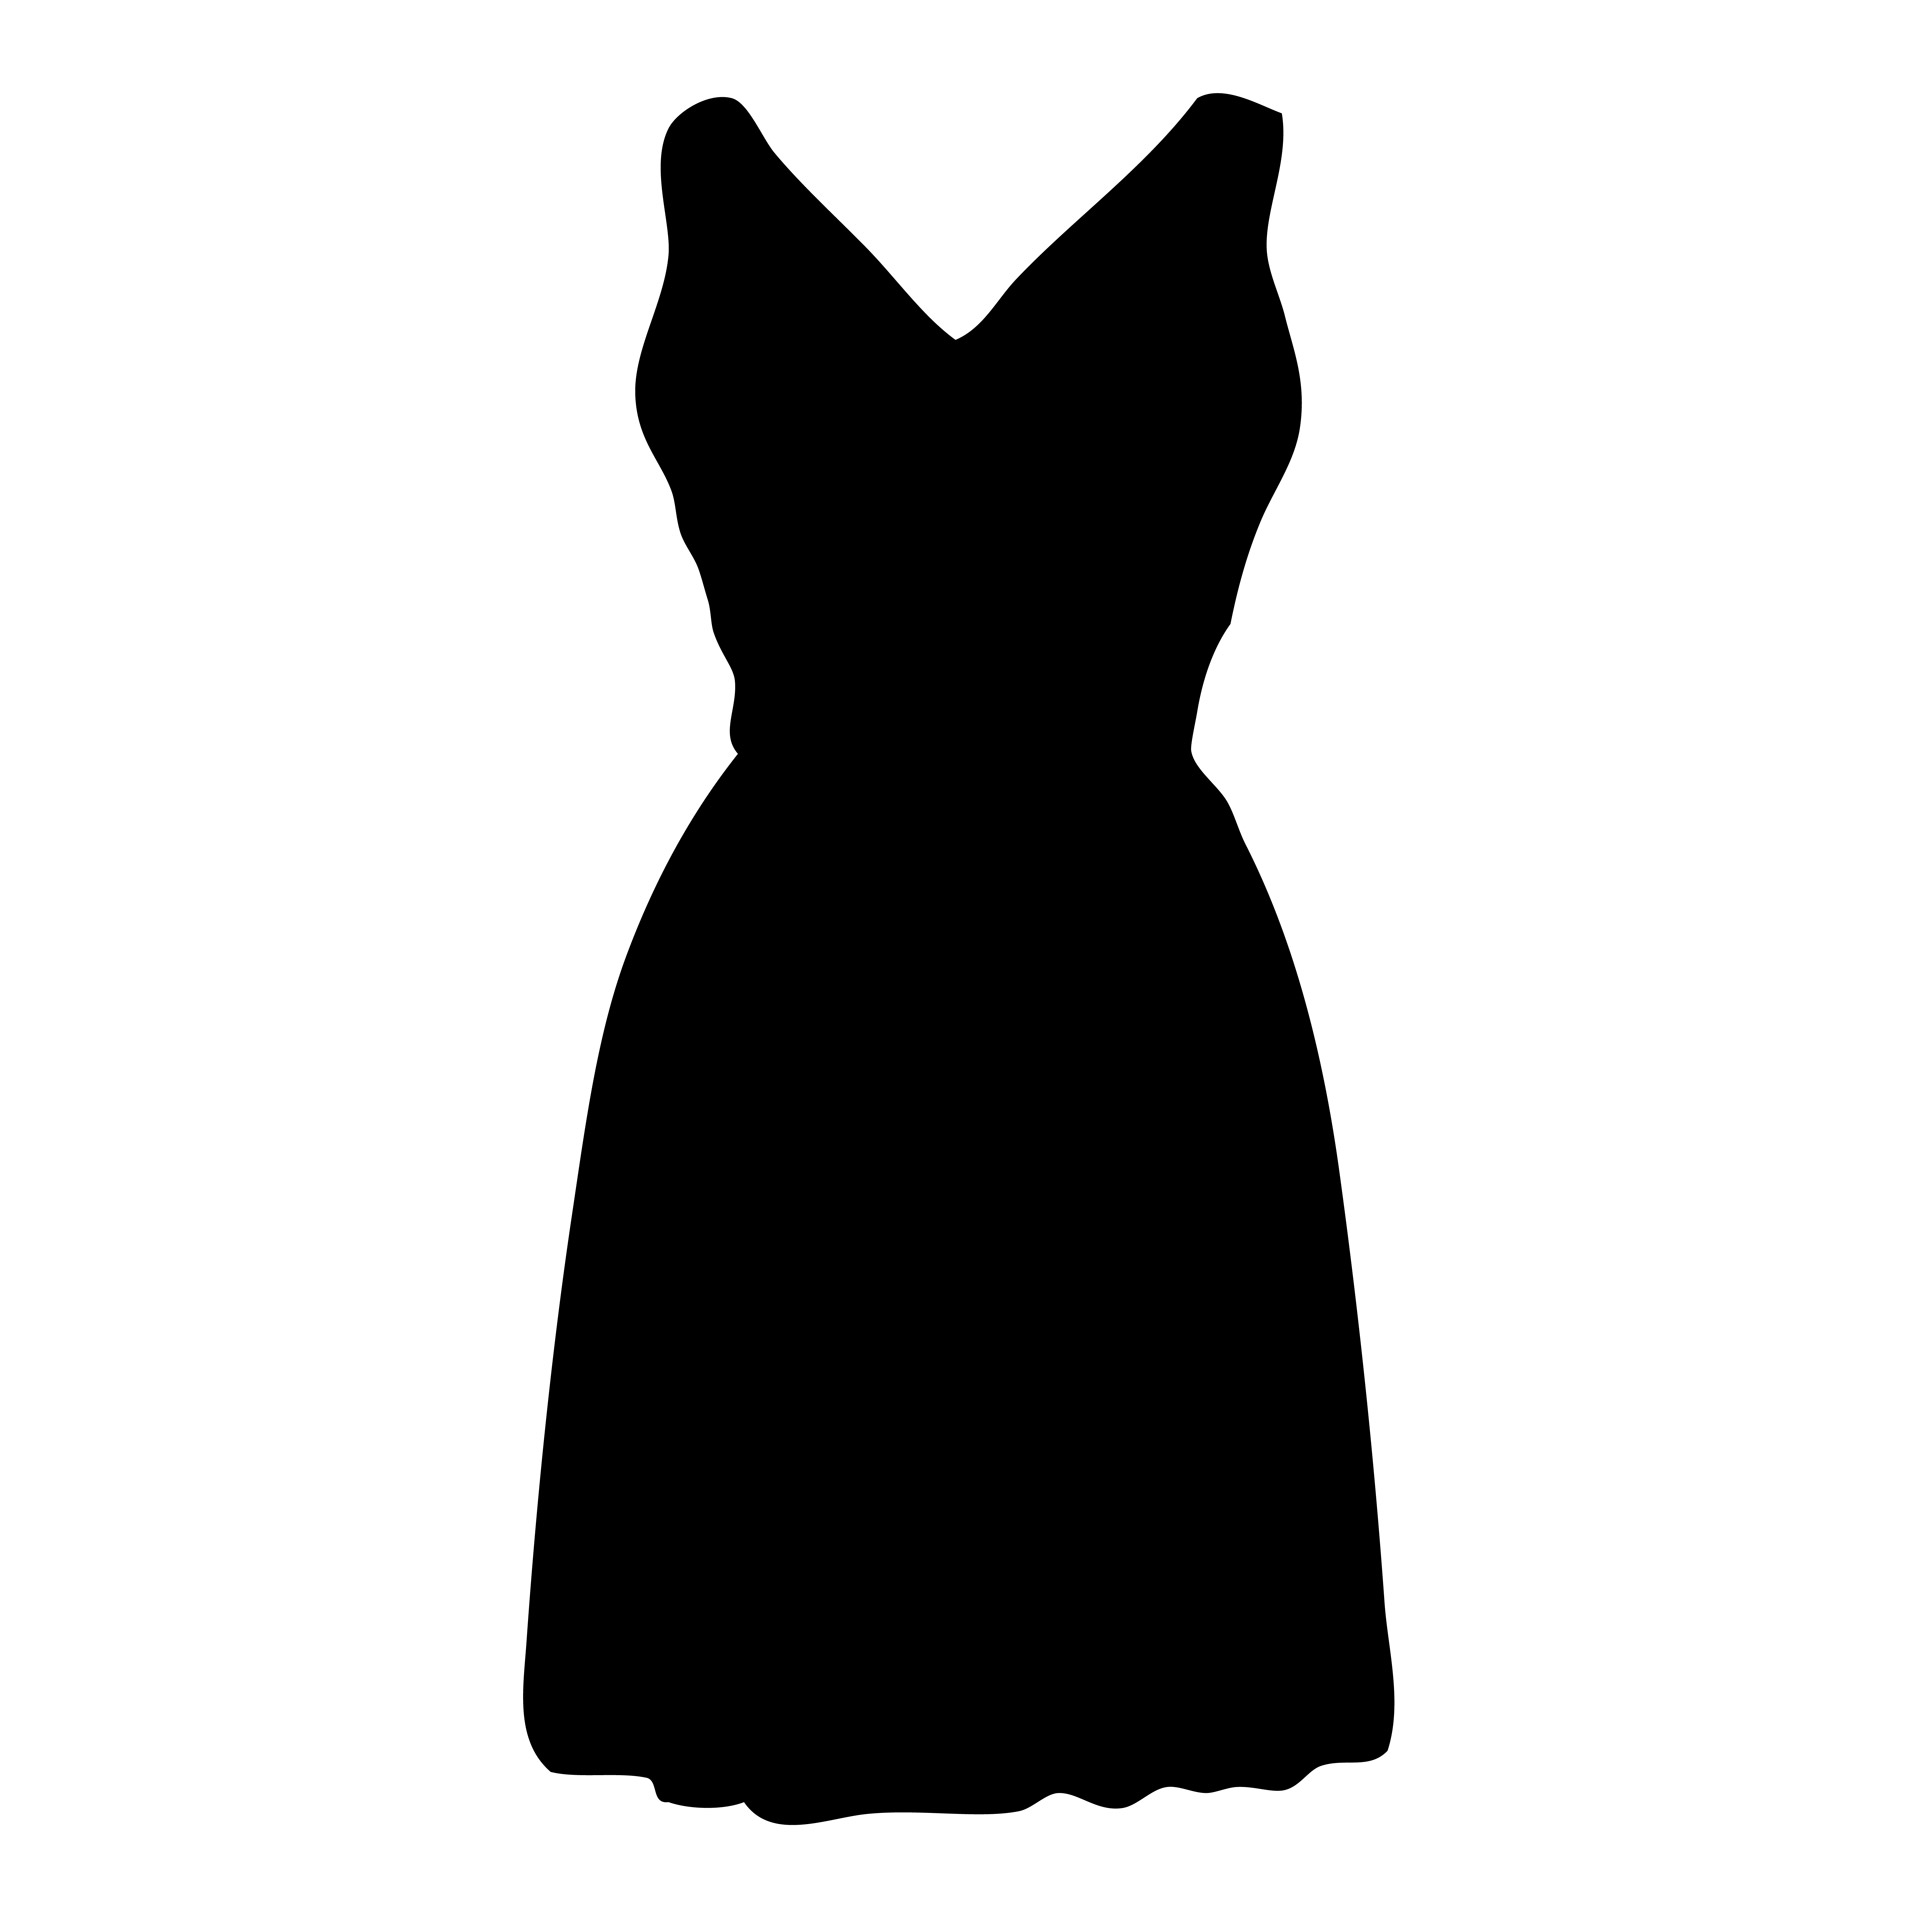 Dress Clipart Black And White